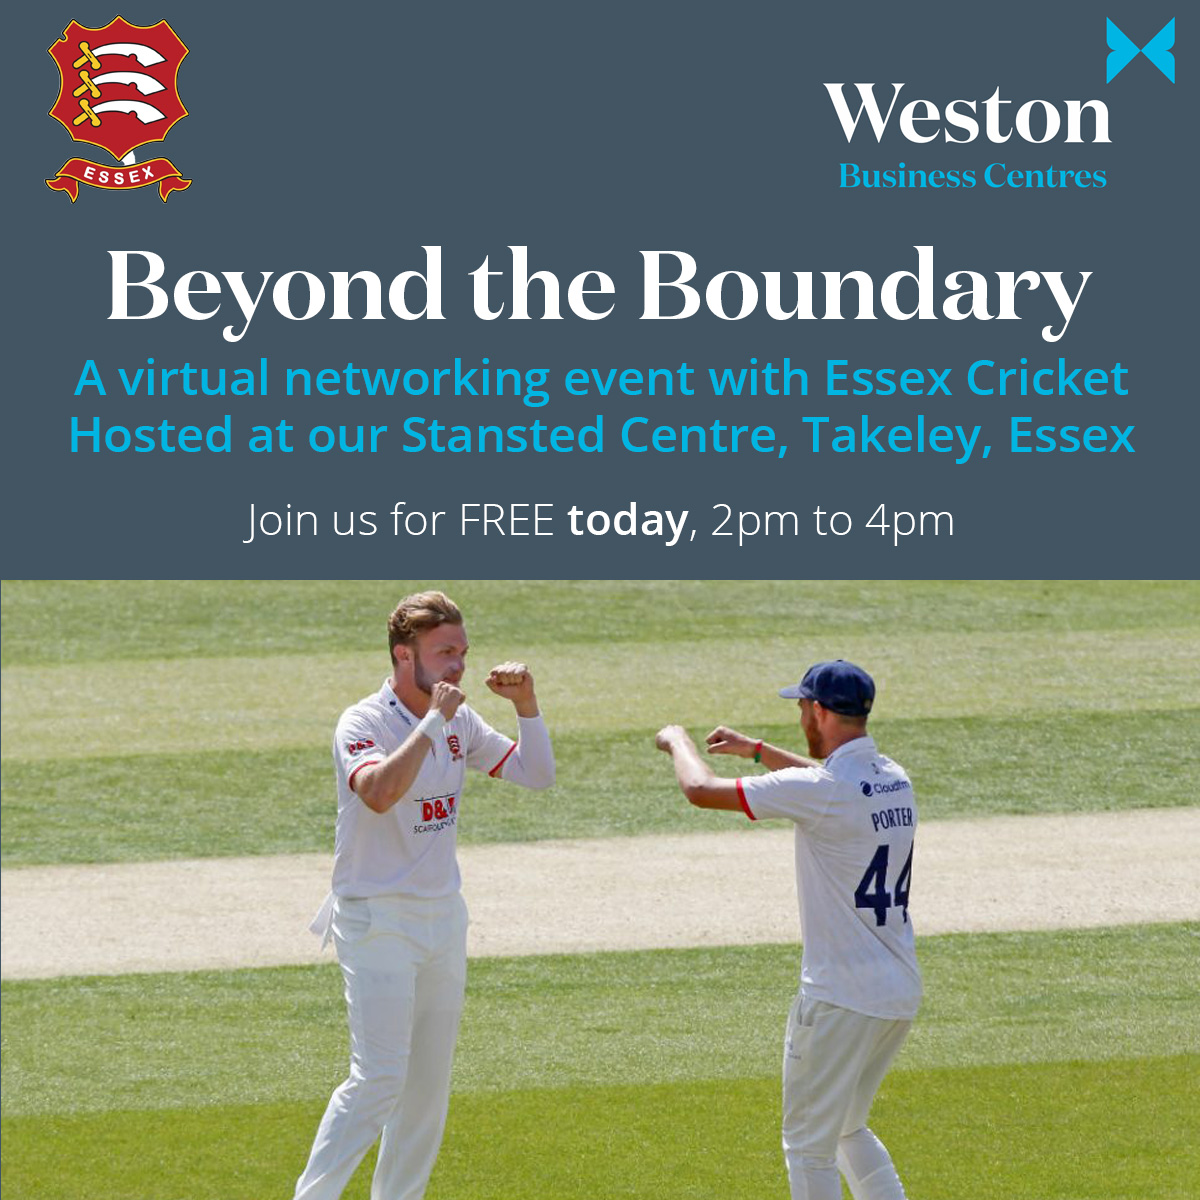 TODAY! Join us from 2pm to 4pm for @EssexCrickets #virtualnetworking event #BeyondtheBoundary sponsored by @Tees_Law Hosted from our #Stansted centre! essexcricket.org.uk/virtual-beyond…